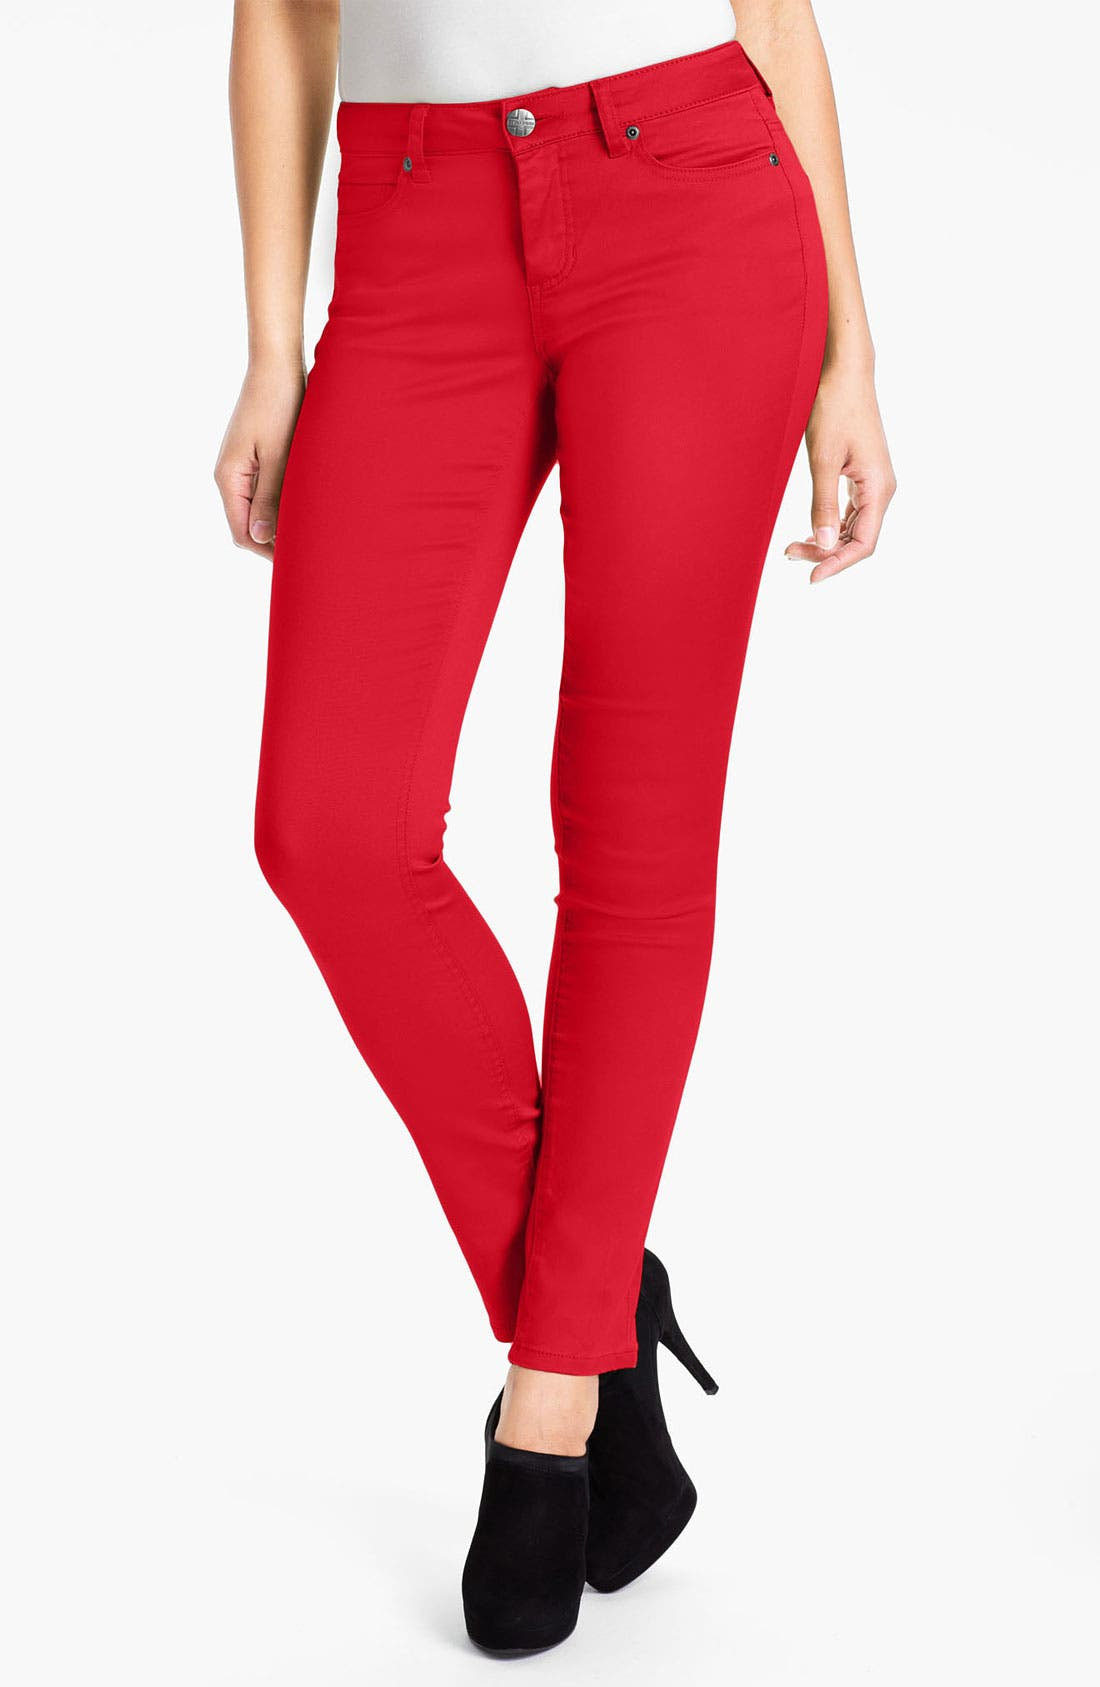 Main Image - Liverpool Jeans Company 'Abby' Skinny Stretch Twill  Jeans (Petite) (Online Exclusive)